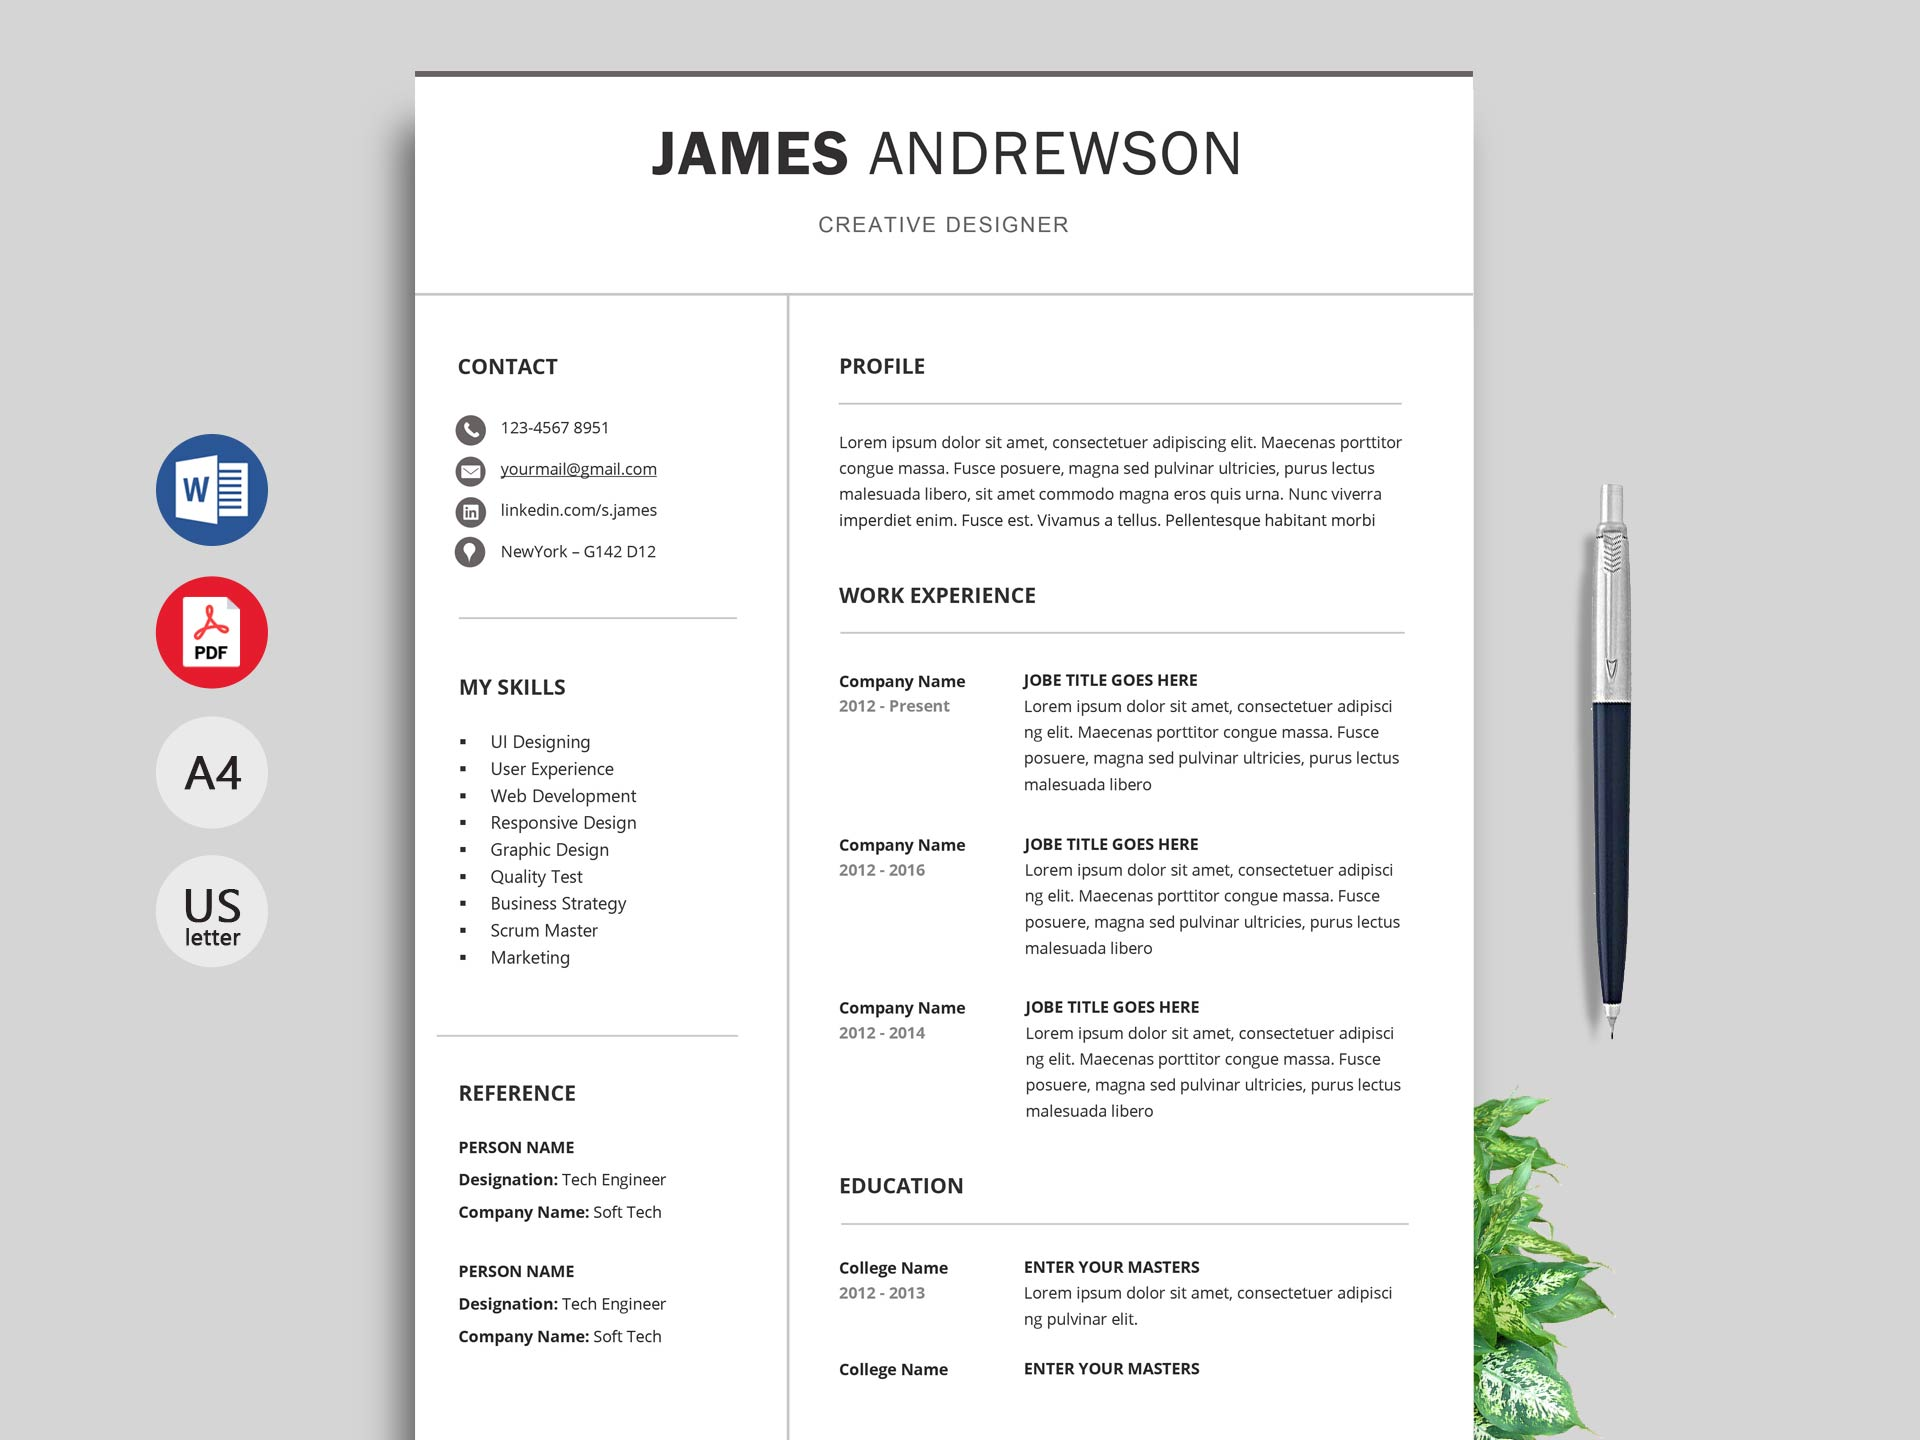 free simple resume cv templates word format resumekraft current adapt professional på Resume Current Resume Format 2019